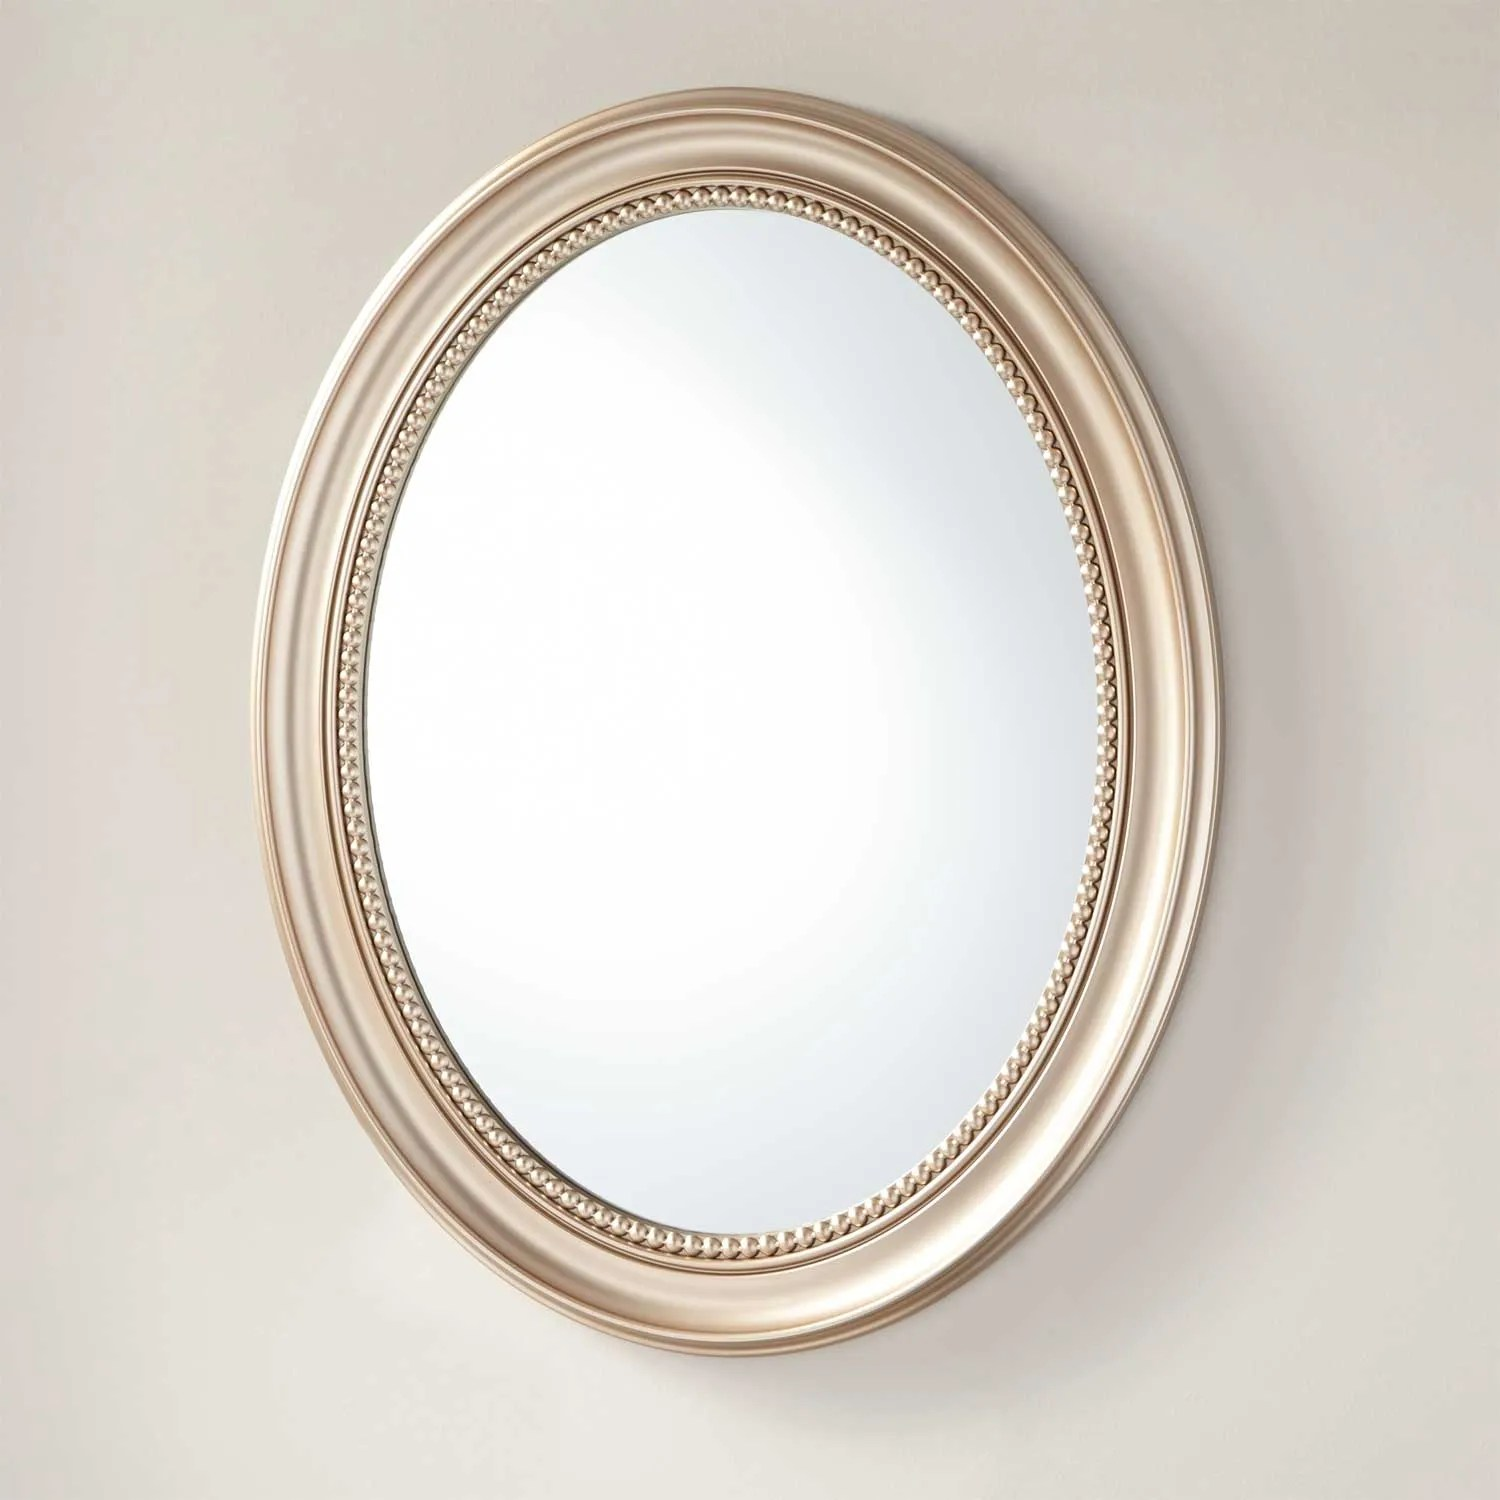 Favaloro Recessed Mount Oval Medicine Cabinet with Mirror